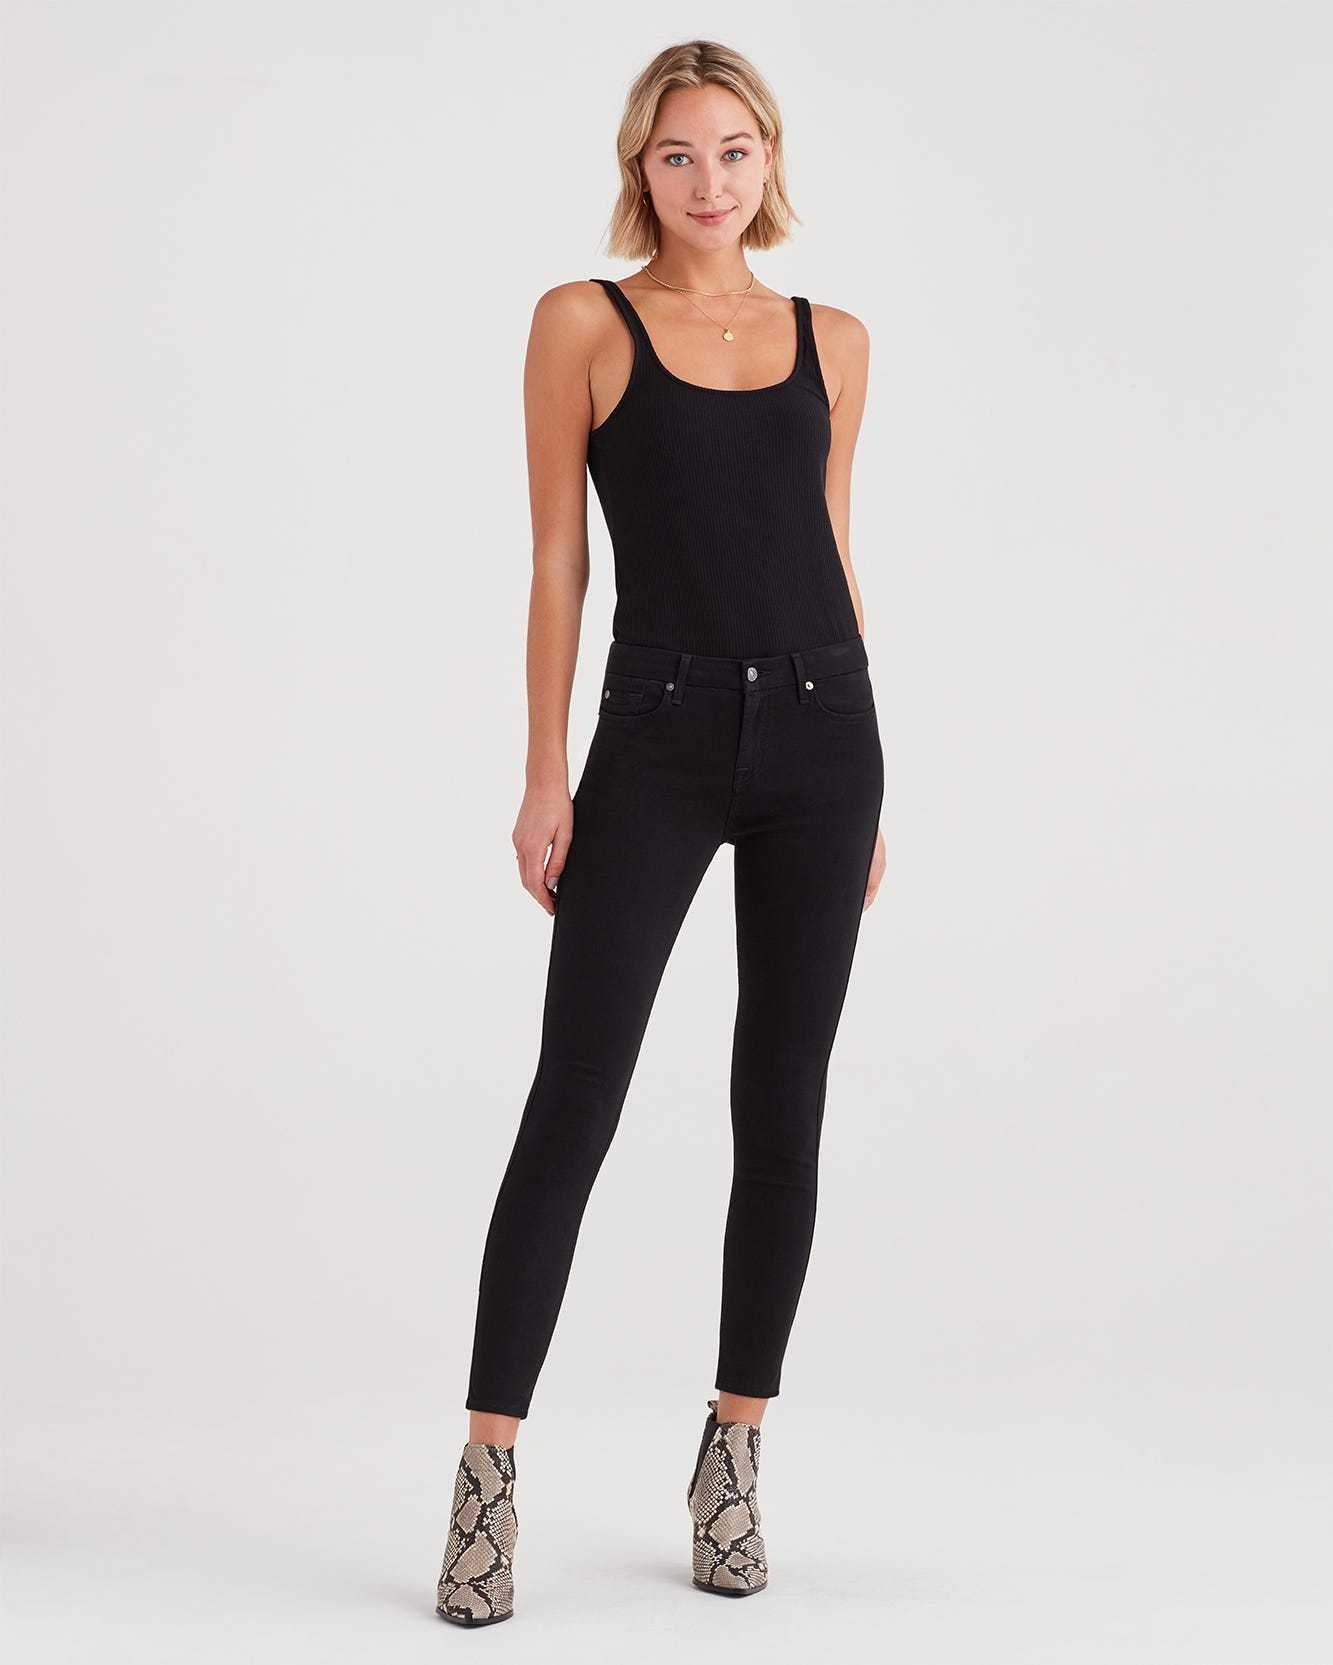 shop 7 for all mankind clothing